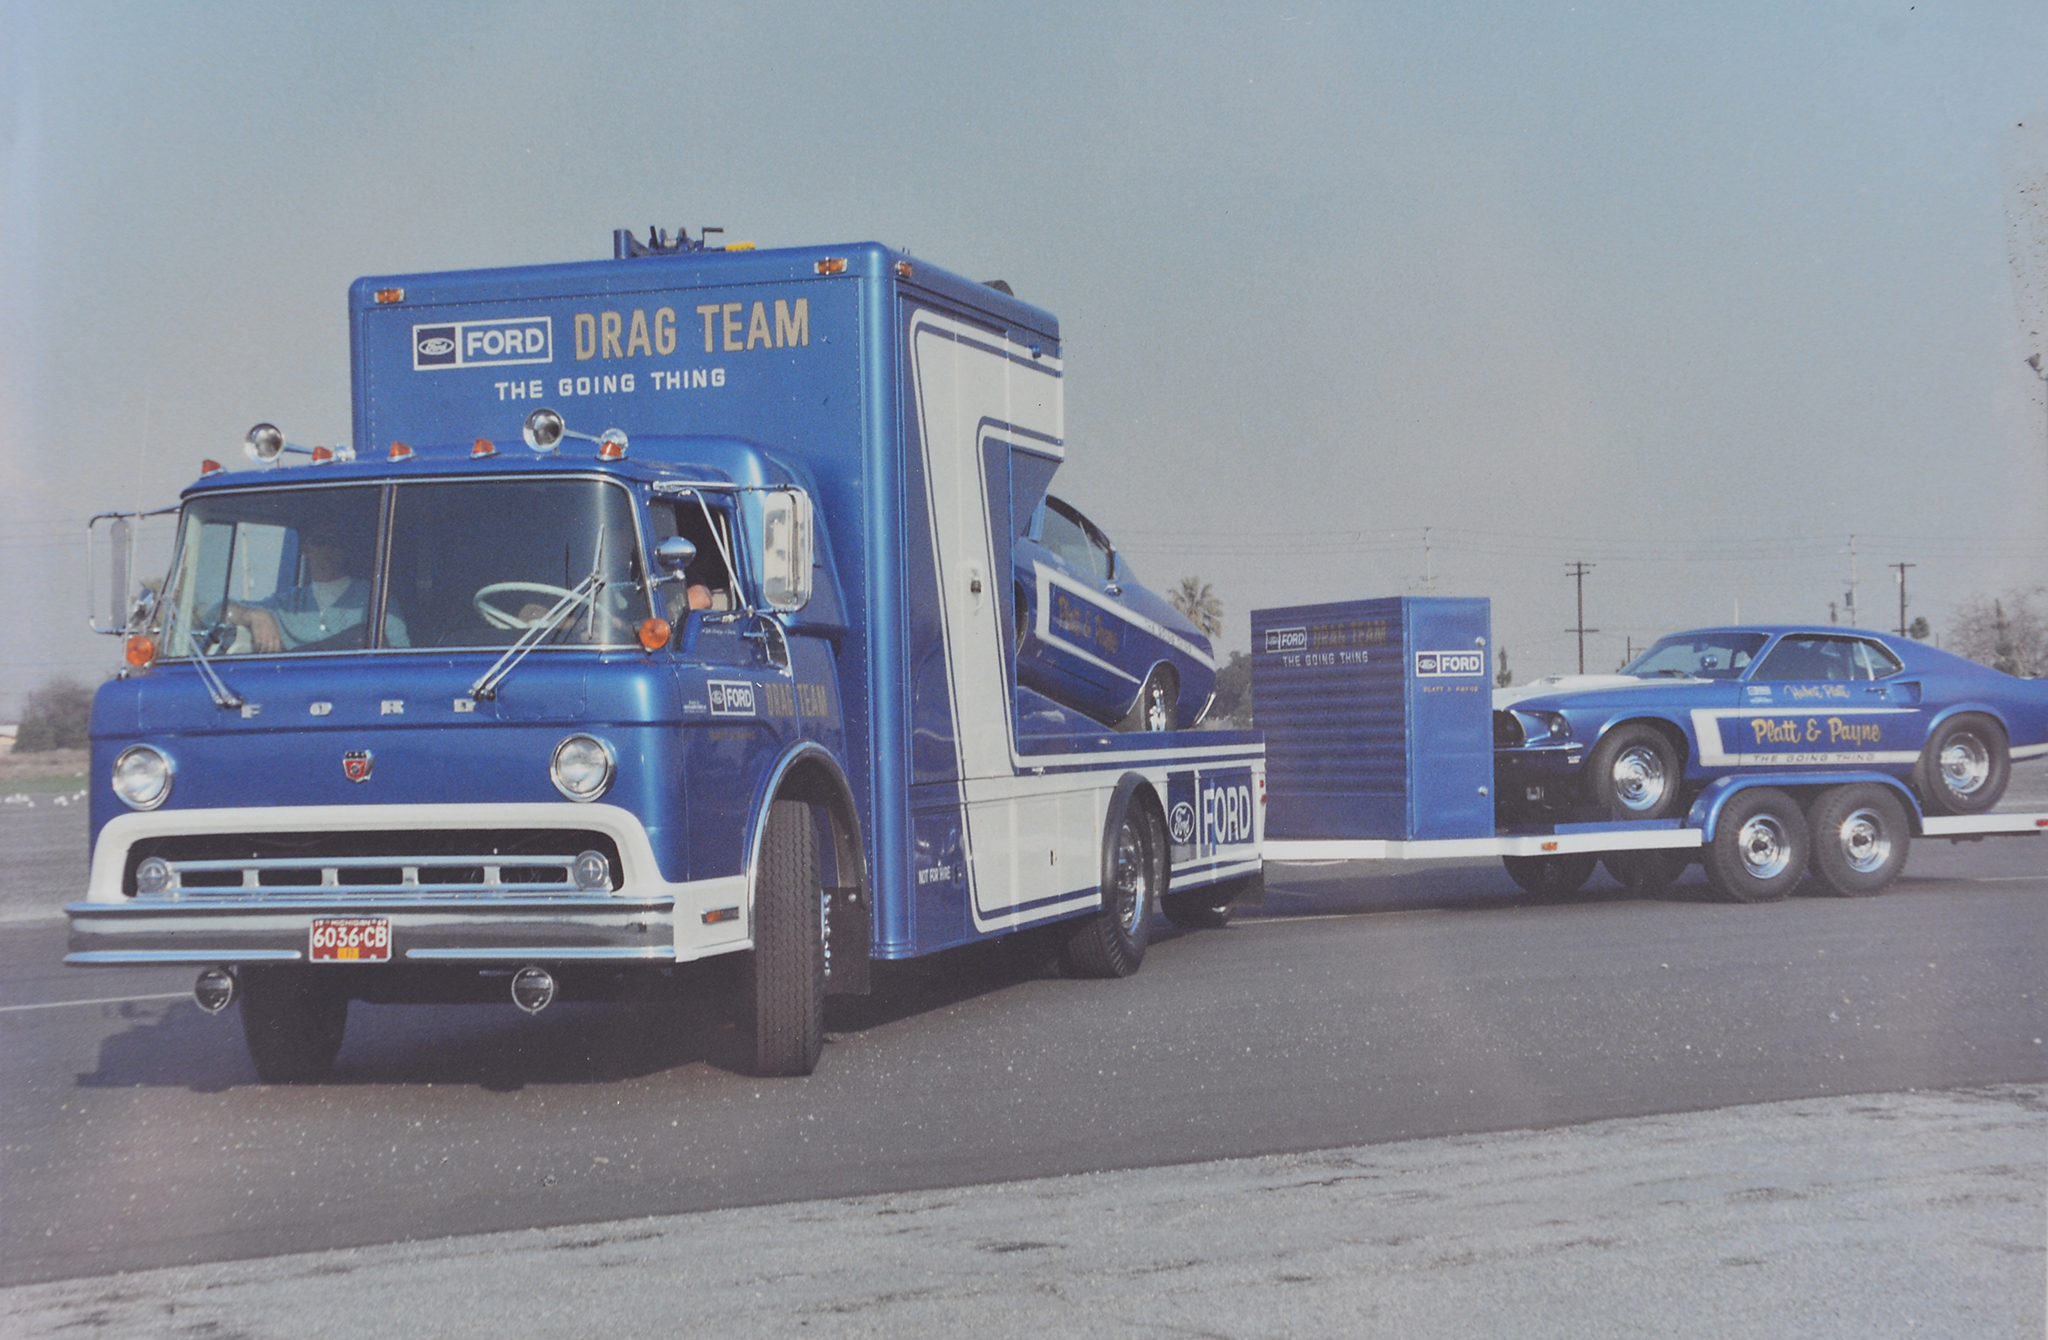 Hubert Platt and Randy Payne drove the Ford Drag Team cars for the Eastern Team. During the week, the teams headquartered at Ford dealerships, where they held seminars and helped set up Ford drag clubs. On the weekends, they traveled to dragstrips to race. They used a special Ford car hauler with a cab-over design made from a Ford C800.